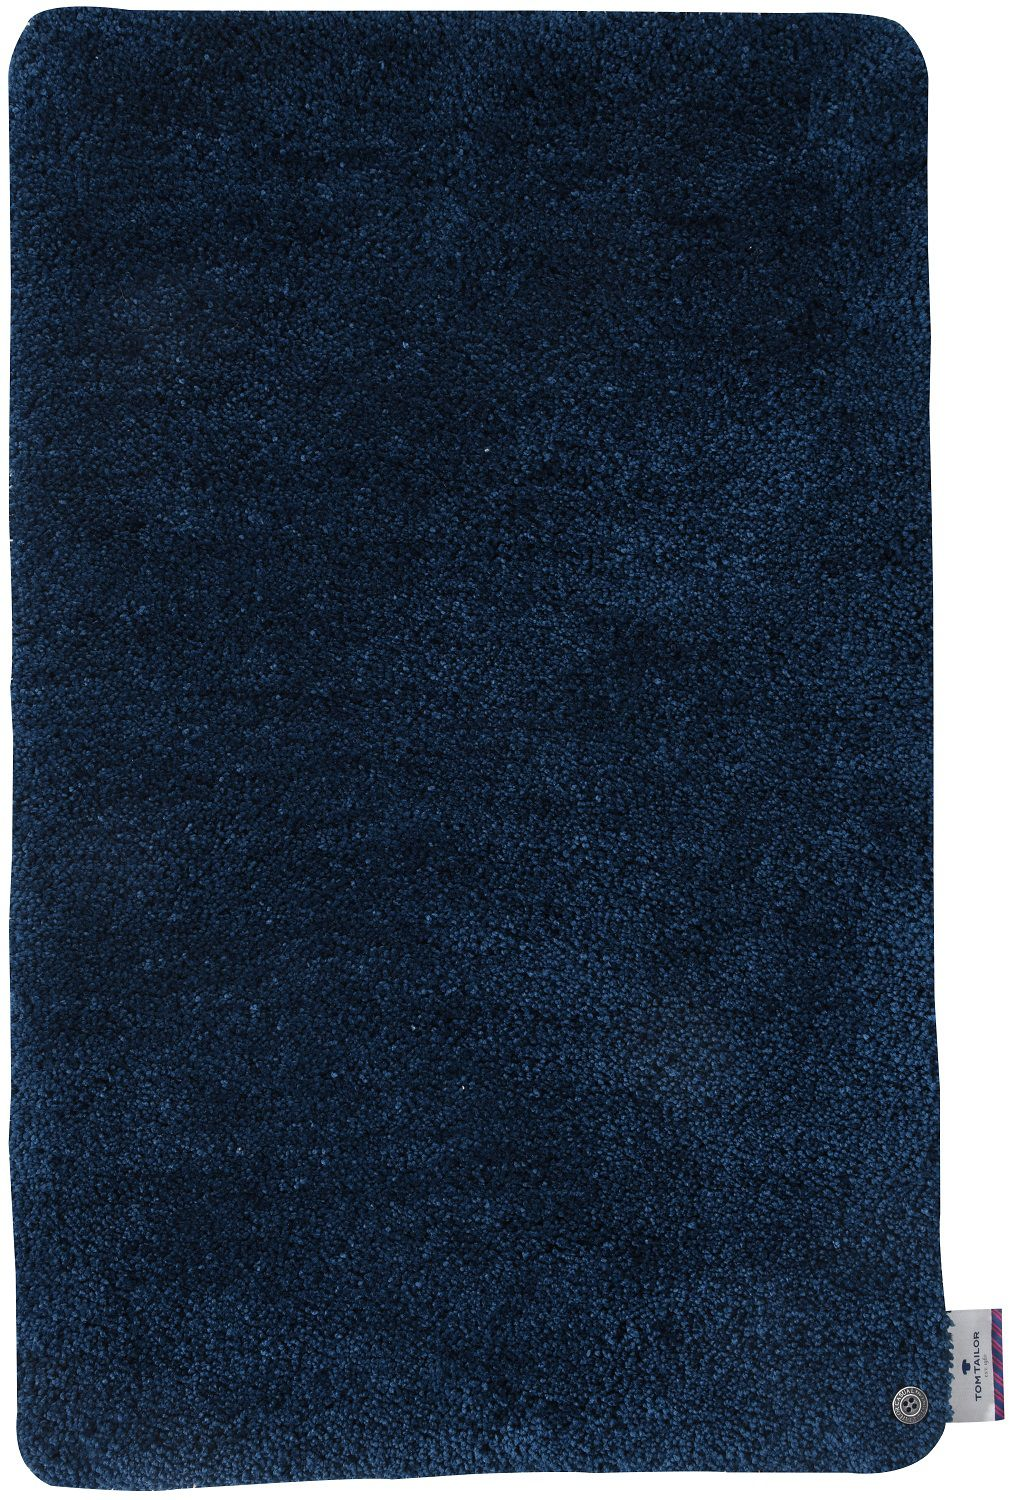 Mmax Online Teppiche Gallery Of Fermliving Kelim Rug Merge Small With Mmax Online Teppiche Top